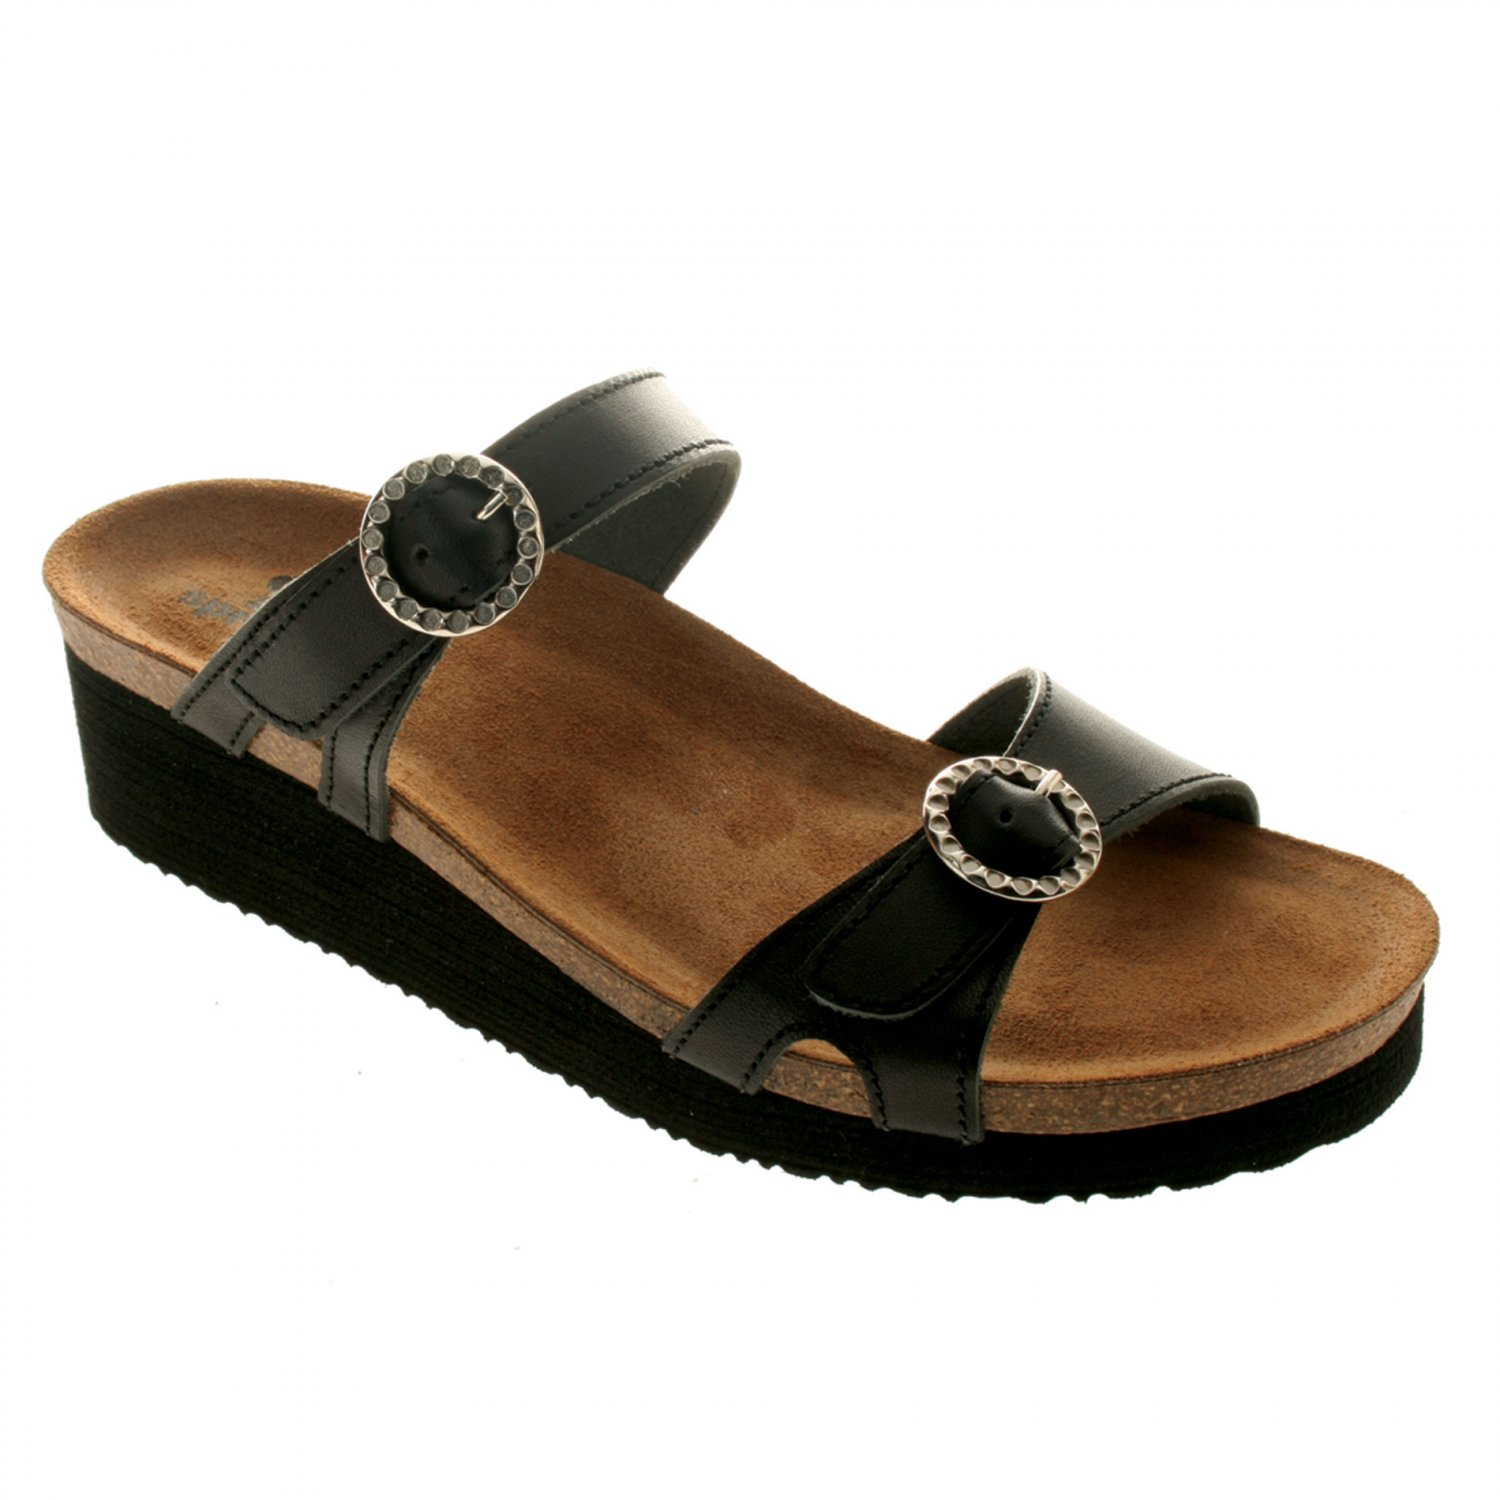 Spring Step TAMRYN Sandals Shoes All Sizes & Colors $8